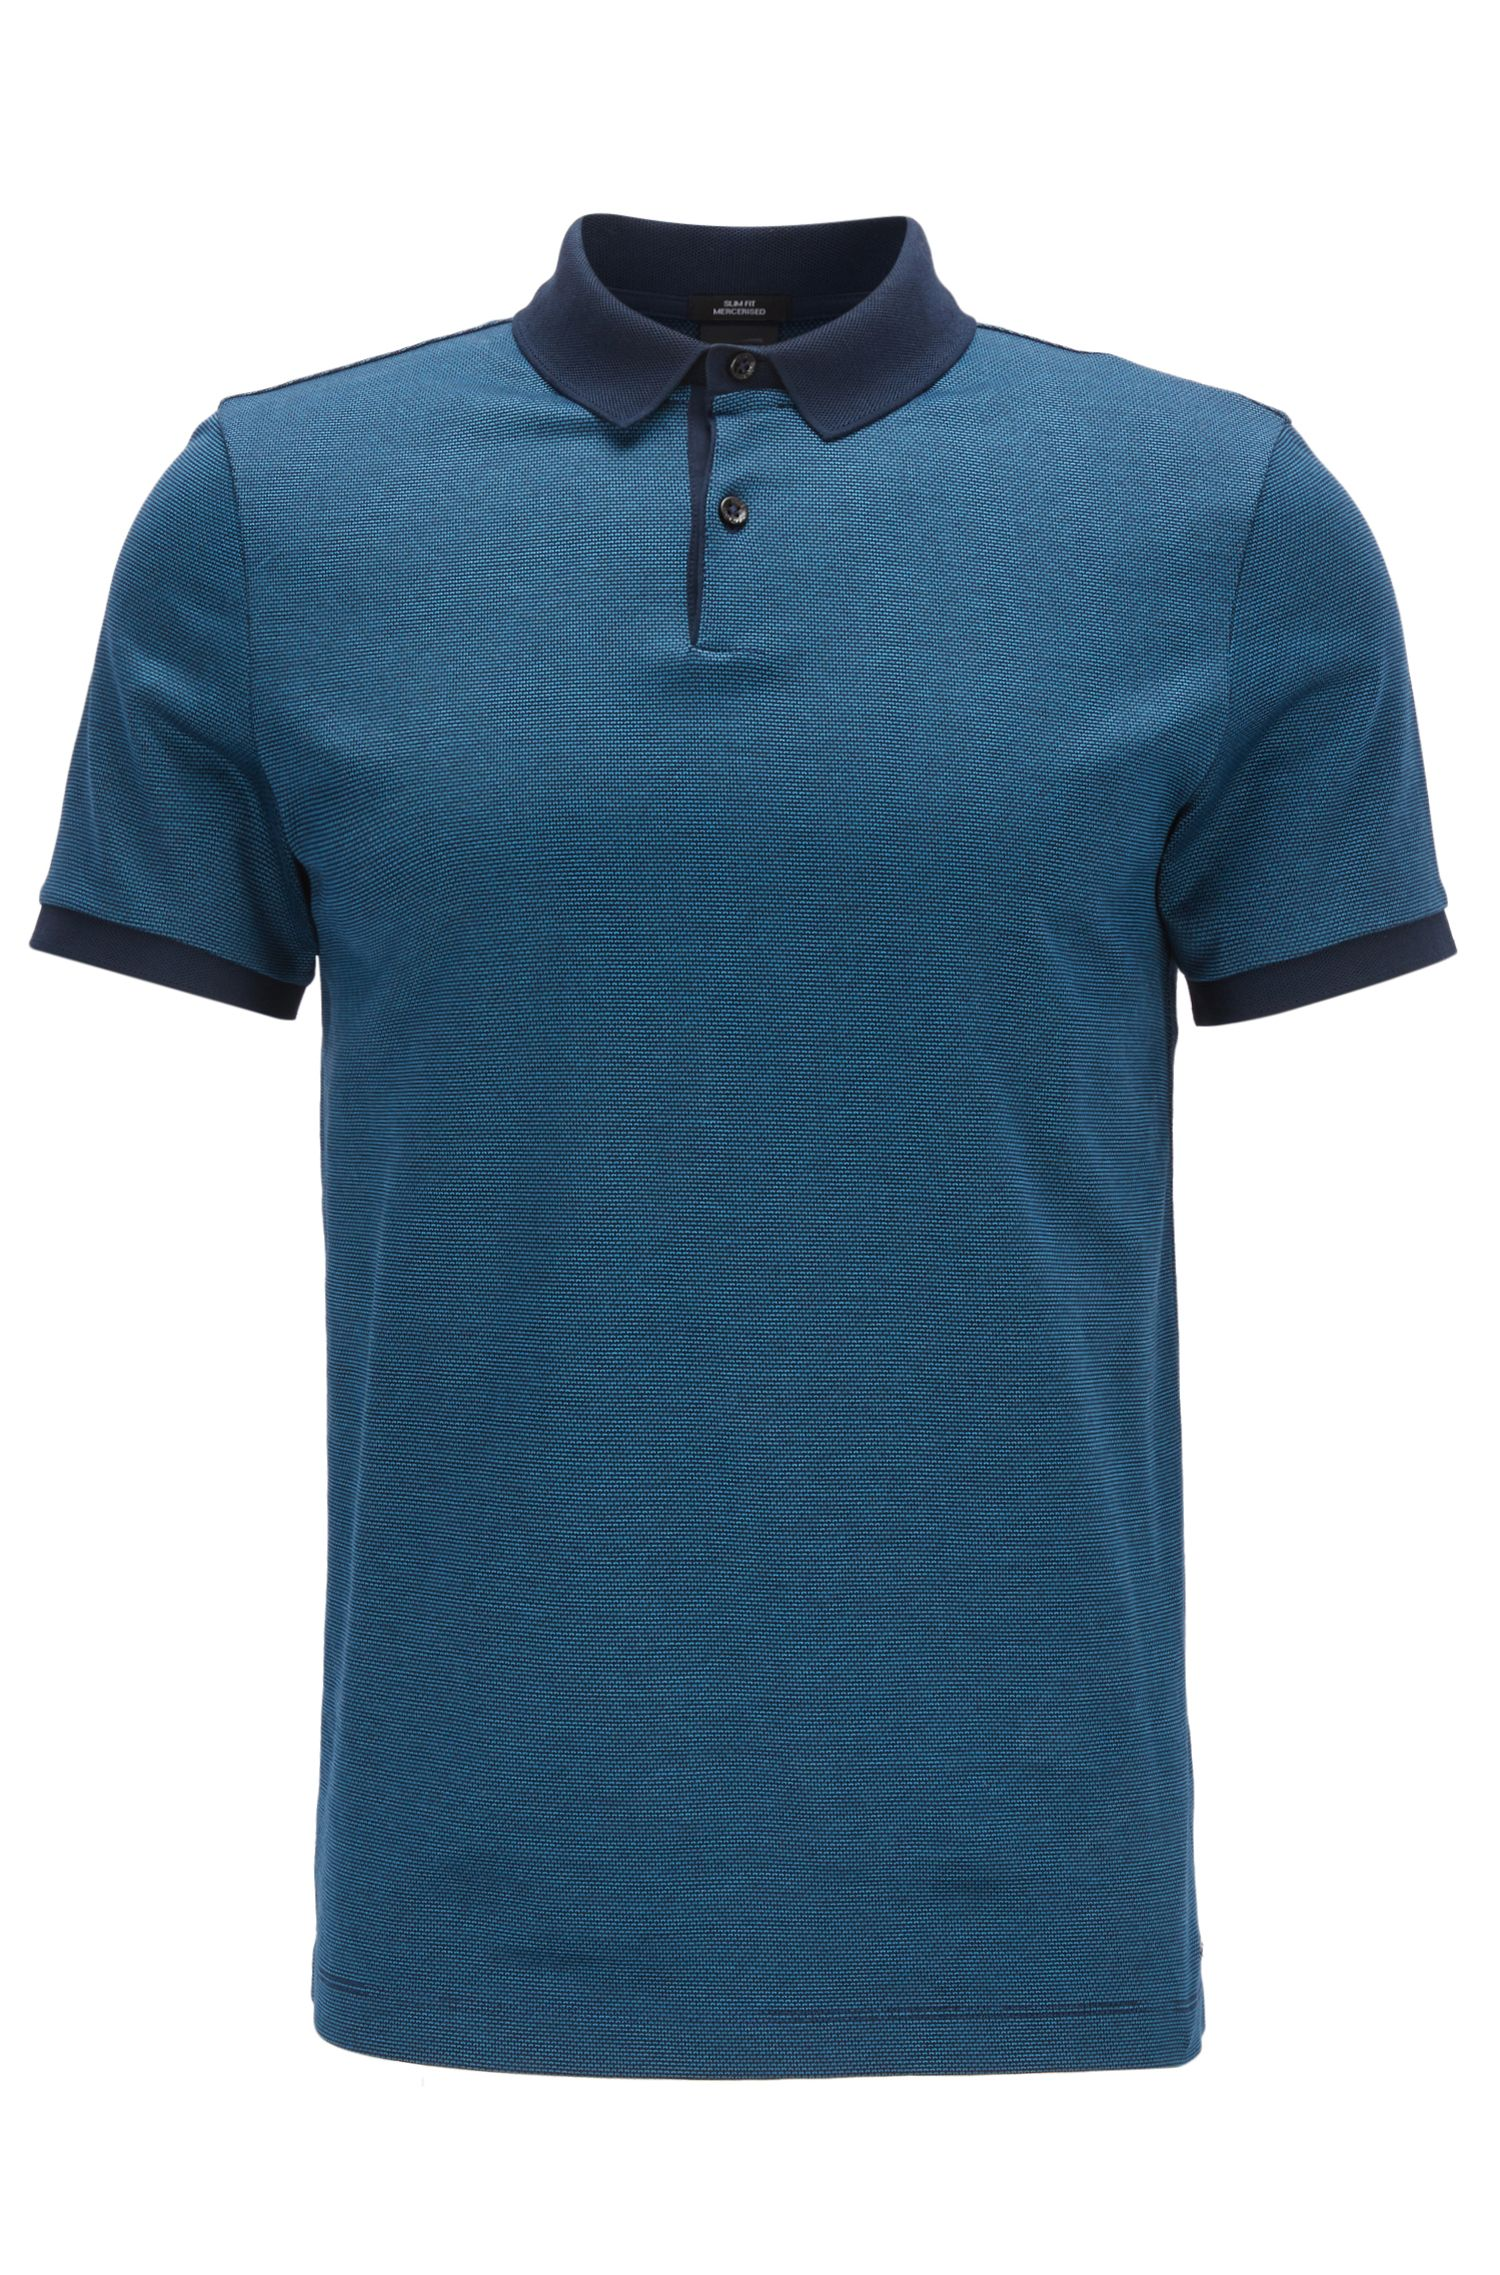 Mercerized Cotton Polo Shirt, Slim Fit | Penrose, Dark Blue